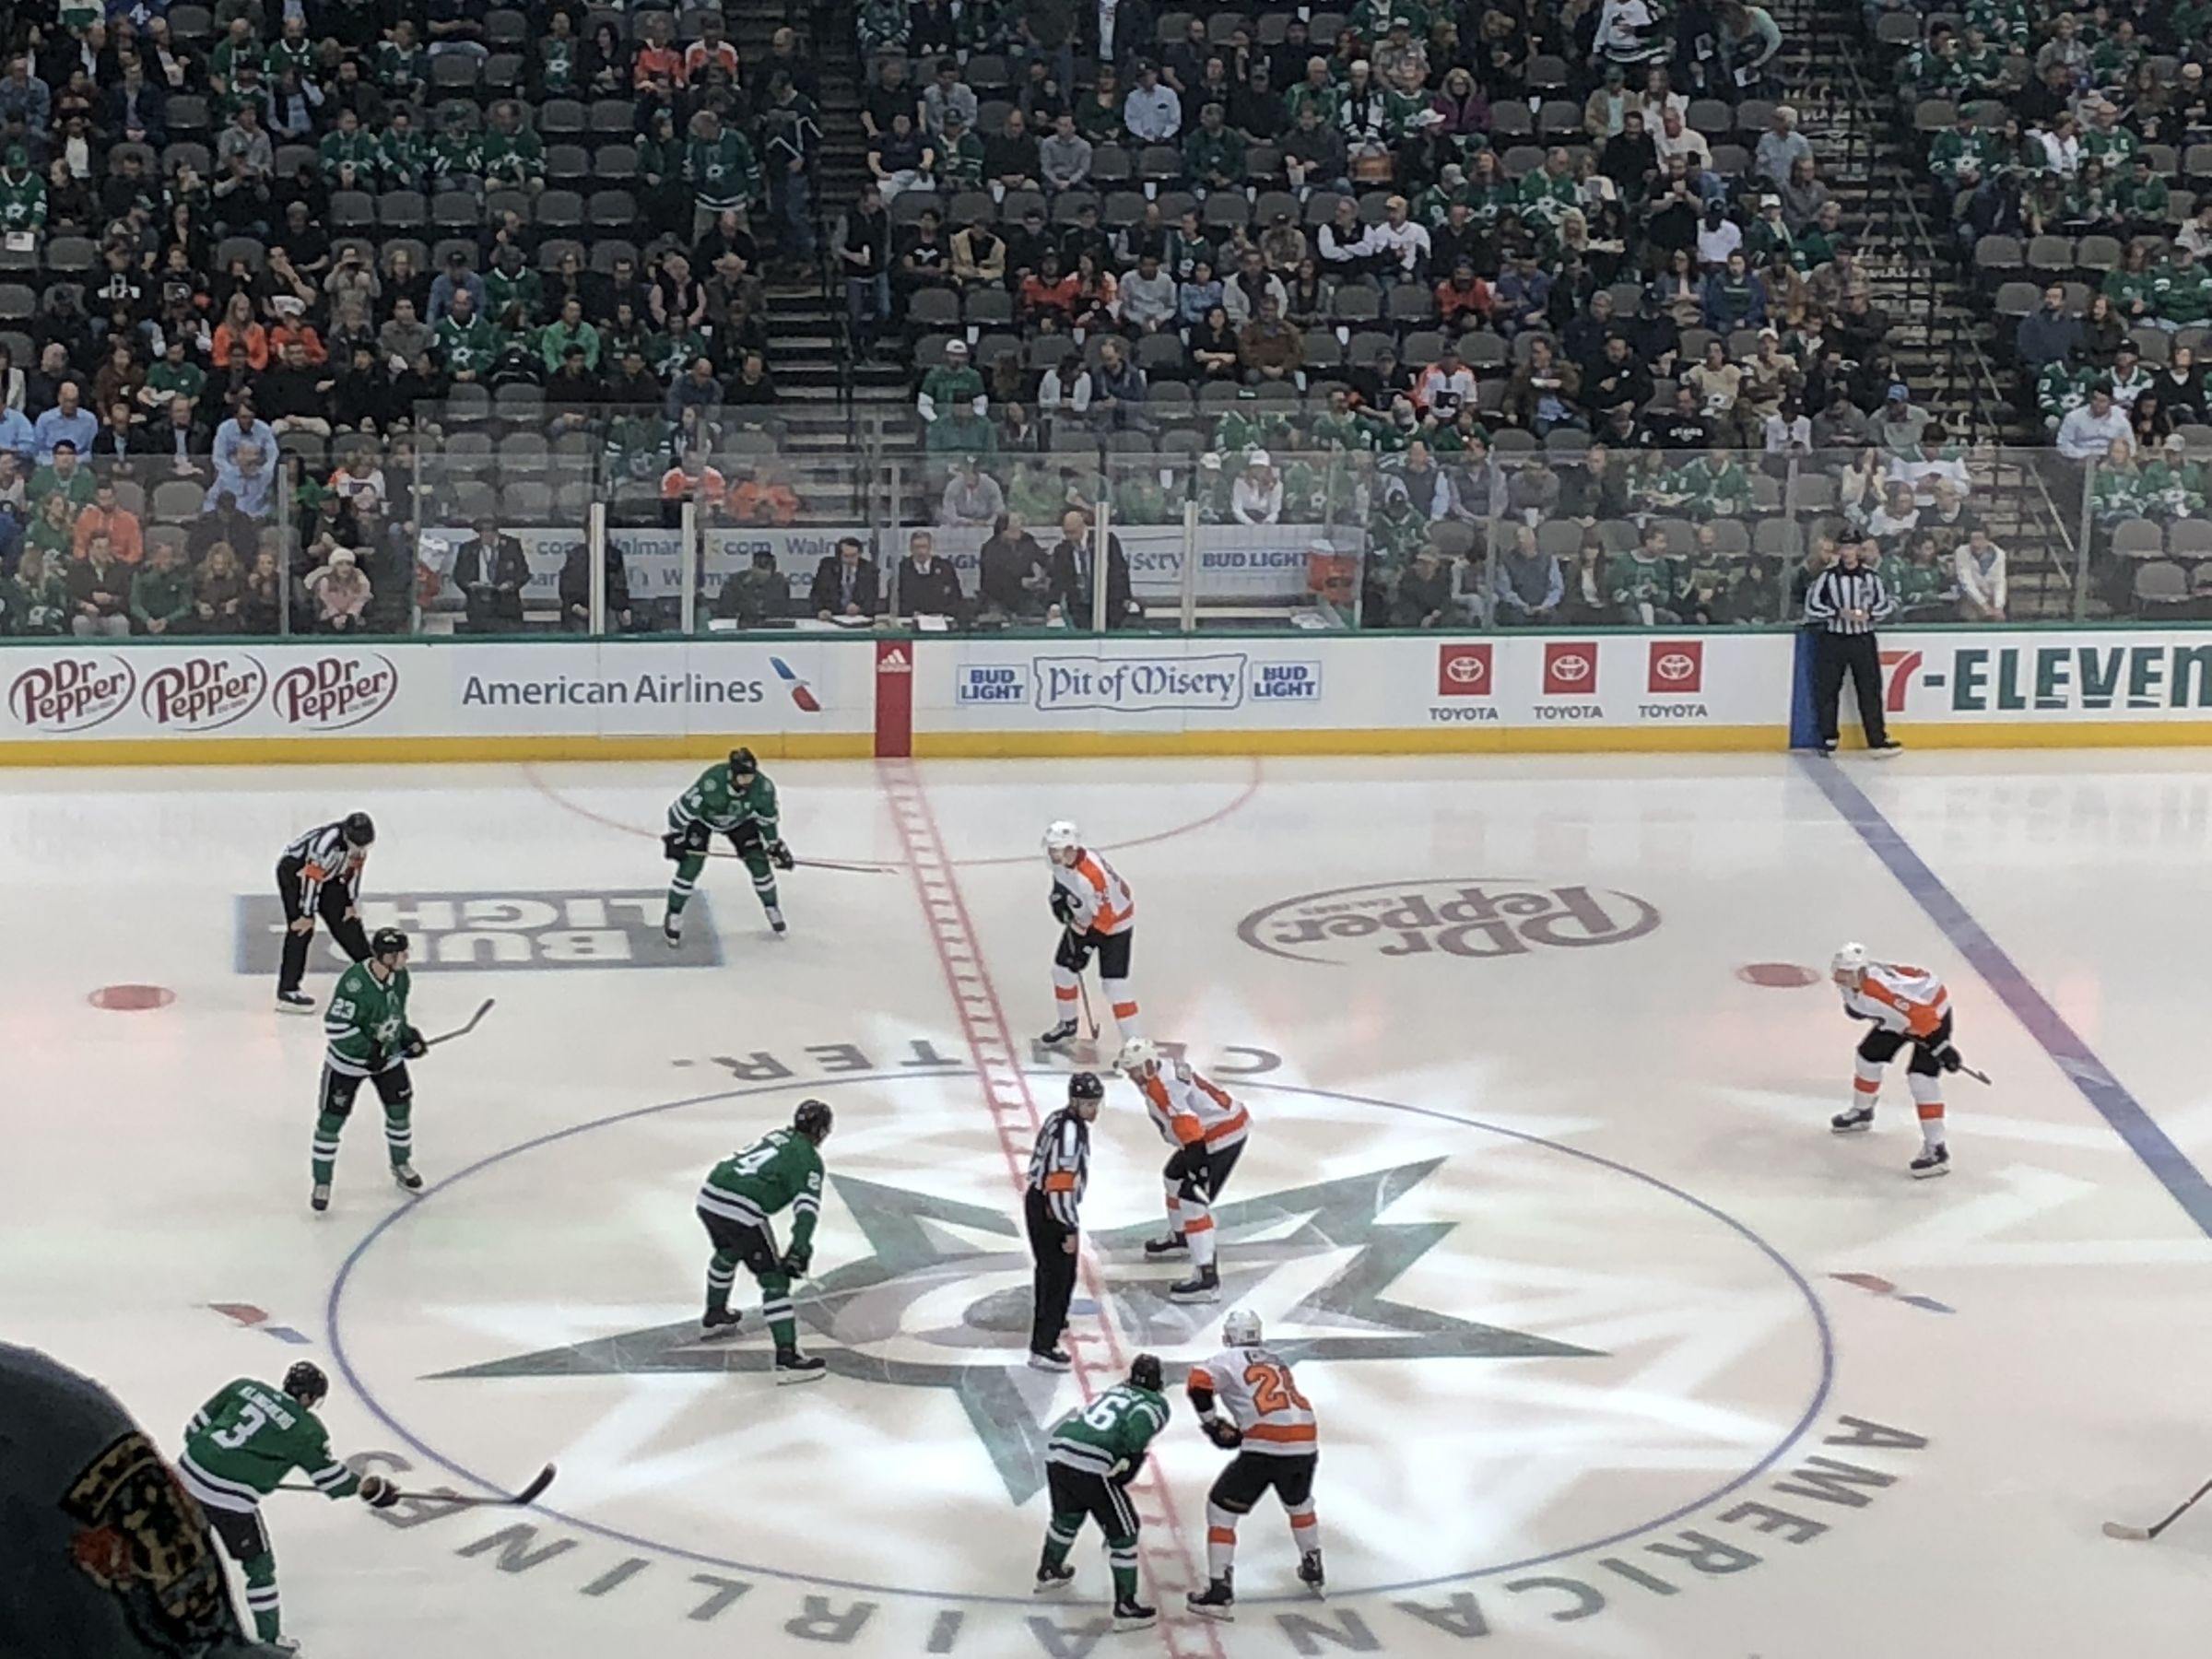 Dallas Stars Seat View for American Airlines Center Section 218, Row C